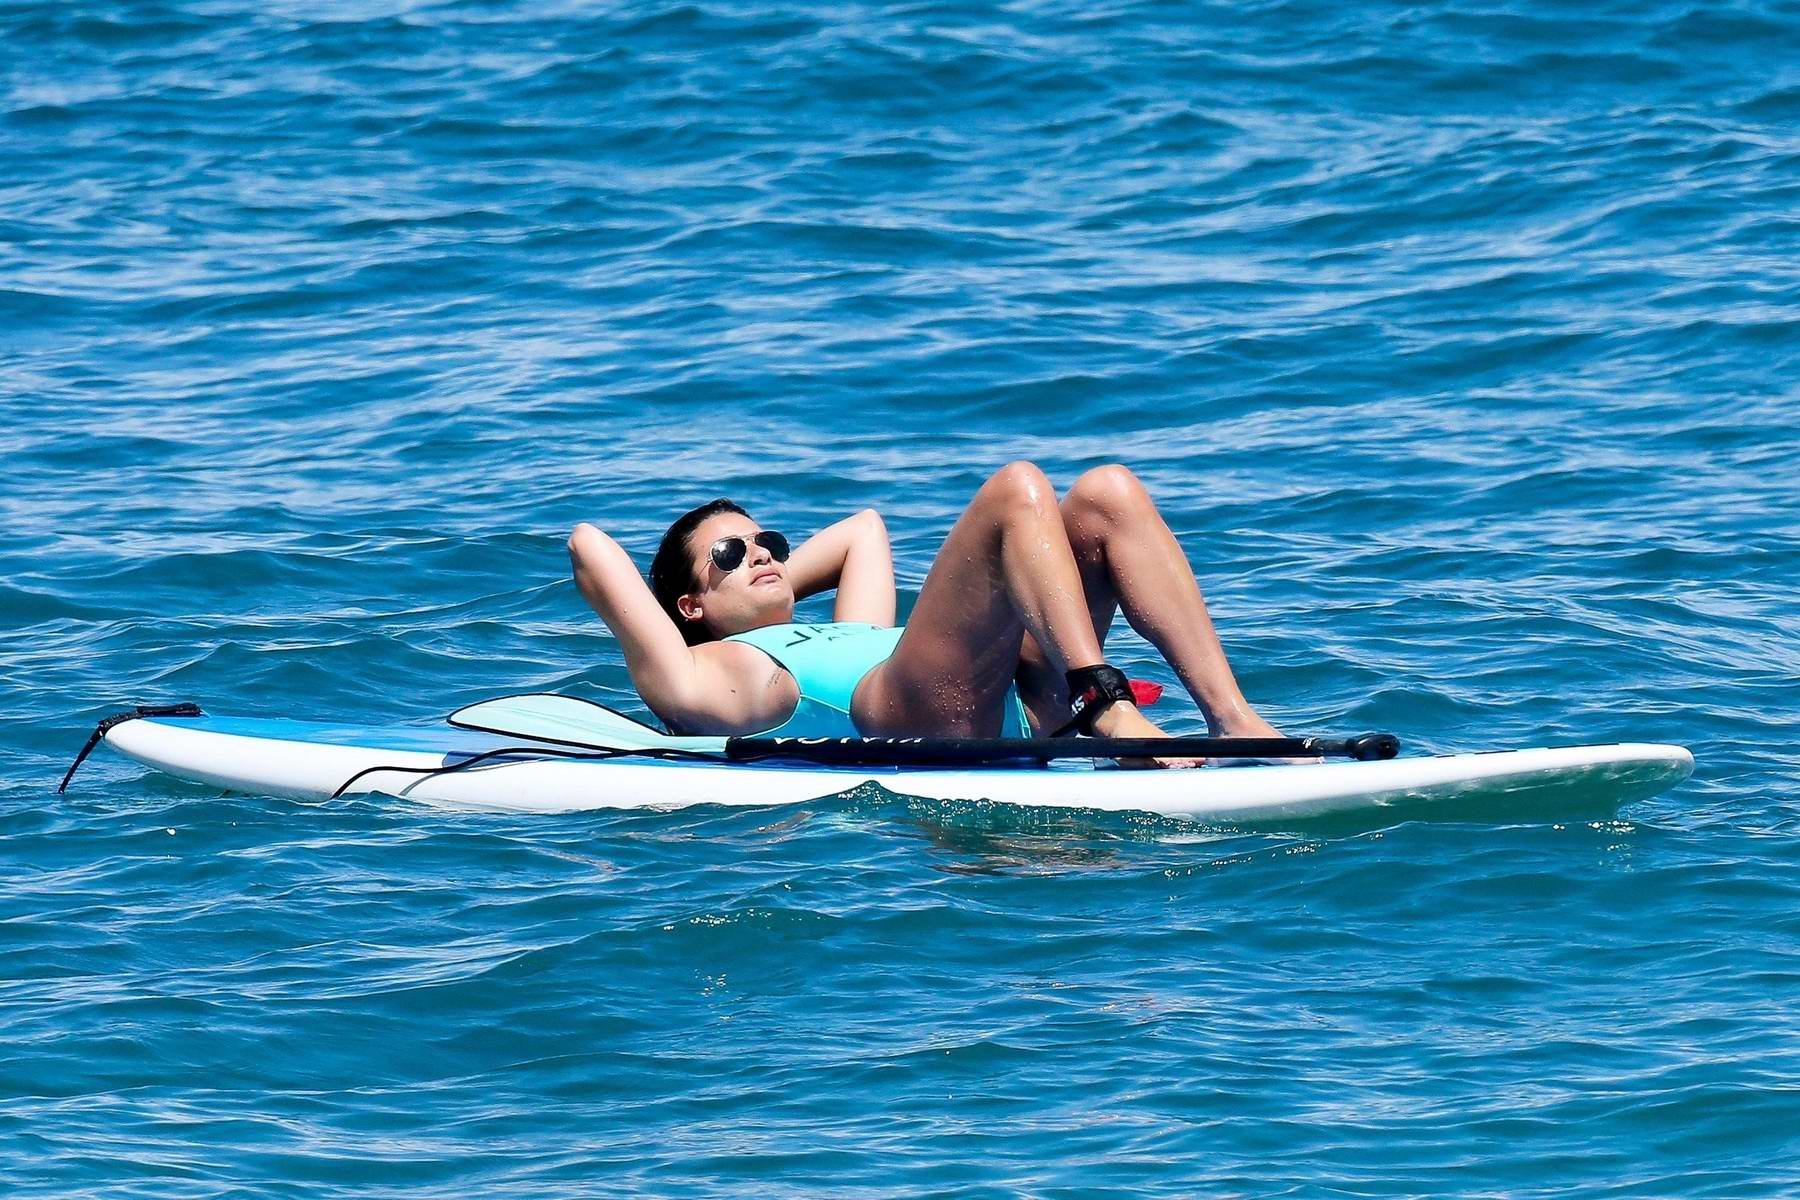 lea-michele-in-a-blue-swimsuit-shows-off-her-yoga-skills-on-a-paddle-board-in-maui-hawaii-300617_11.jpg